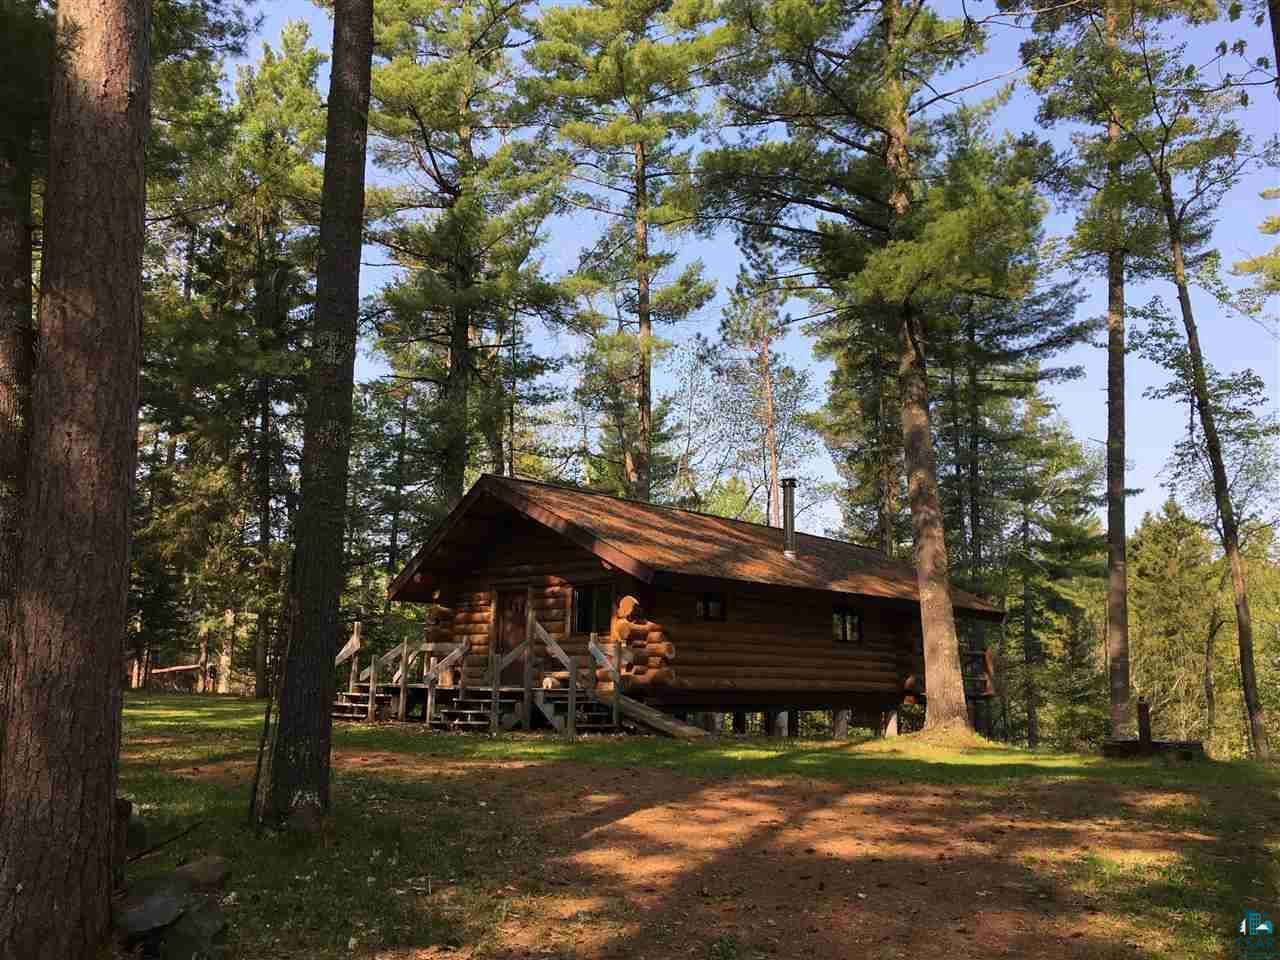 "If you are looking for a forever log cabin, look no more! This beautiful and serene property under 80' virgin pine, home to all of Wisconsin's wildlife and filled with bird song, gets you ""away-from-it-all"". It has one big open floor, this settler?s style cabin with high ceilings, and hardwood floors. It is warmed by a wood stove with catalytic converter, which heats the place like a charm! The kitchen corner is roughed in and not yet hooked up. This gorgeous structure has 4 bunk beds, so you won?t miss a thing until the last person goes to sleep.  During the warmer months, live, read, write and simply enjoy the huge covered deck watching the bald eagles sore and fish for steelhead or rainbow trout in the Cranberry River below. Or walk down and fish yourself! This property comes with detached garage / wood shed, where the composting toilet has it's private 6 x 10' space as well. There is an amazing flowing artesian well that pumps 50 degree clear and fresh water non-stop, 30 gallons a minute. Seller says it's like heaven's champagne! This well, close to the house could be the ready-to-go source of water for the home to be plumbed in.  The house would easily allow for an added walk-out basement.  All the structures are wired, but currently pulled off the grid. These 39 acres are located on a country road in the South Shore School district and zoned Forestry-1. There is roughly 550' of frontage on the Cranberry River, which is a class A trout stream. Seller says you have to experience the peaceful feeling this property brings to the soul, he says it's hard to describe in words.  There is little to no cell-service in this area, but fiber-optic internet at the road. Call for additional information and to schedule an appointment."